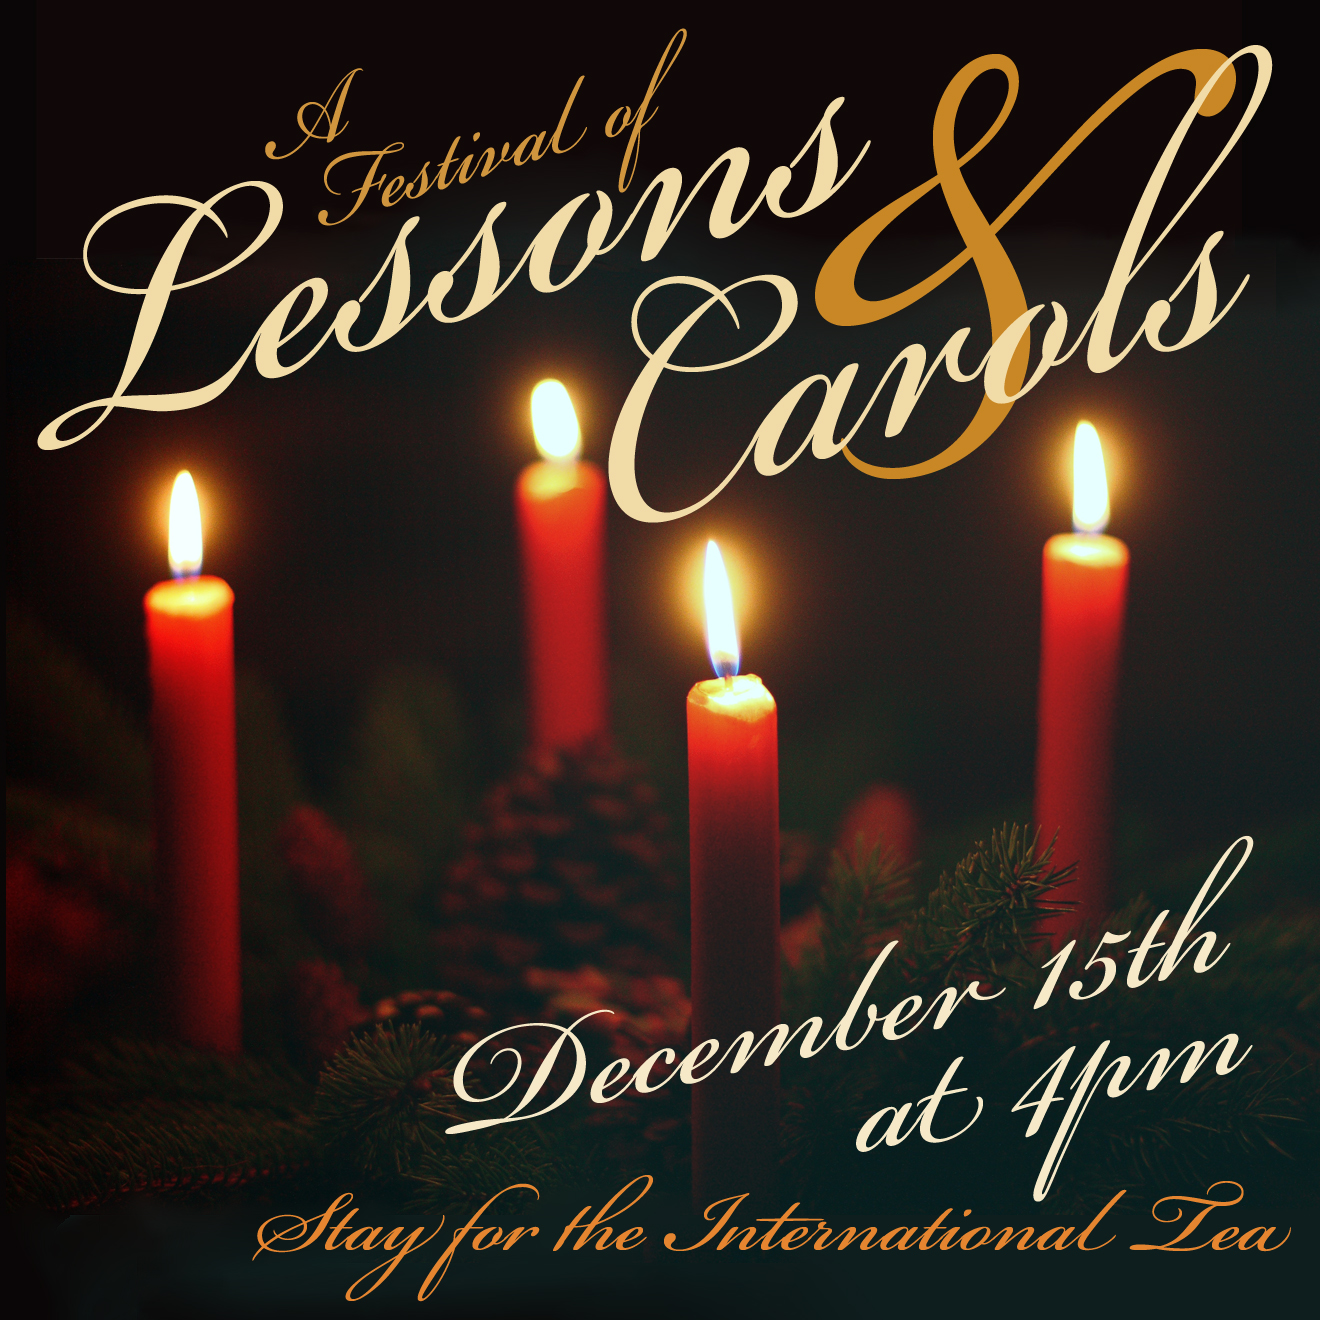 Lessons & Carols Dec. 15 at 5PM